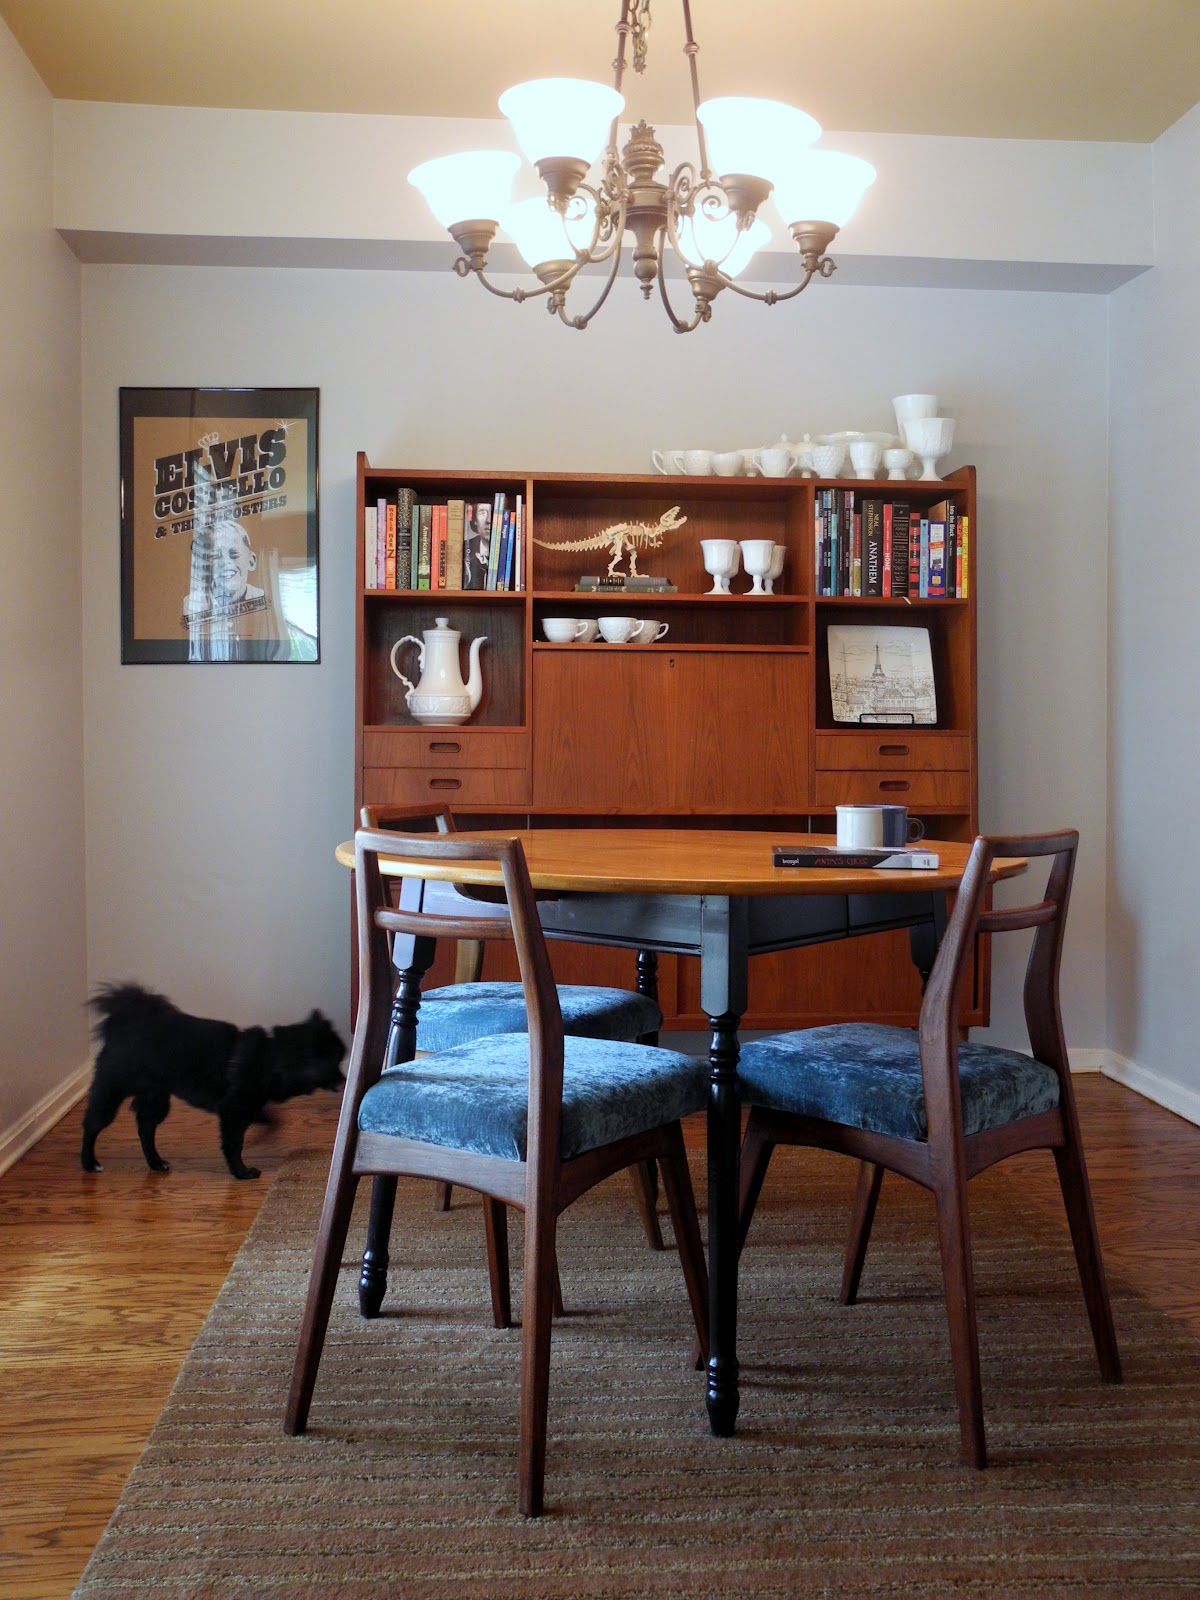 08 gray kitchen table Table Heywood Wakefield via Southern Thrift Wall Unit Chairs and Milk Glass Pre to Post Modern